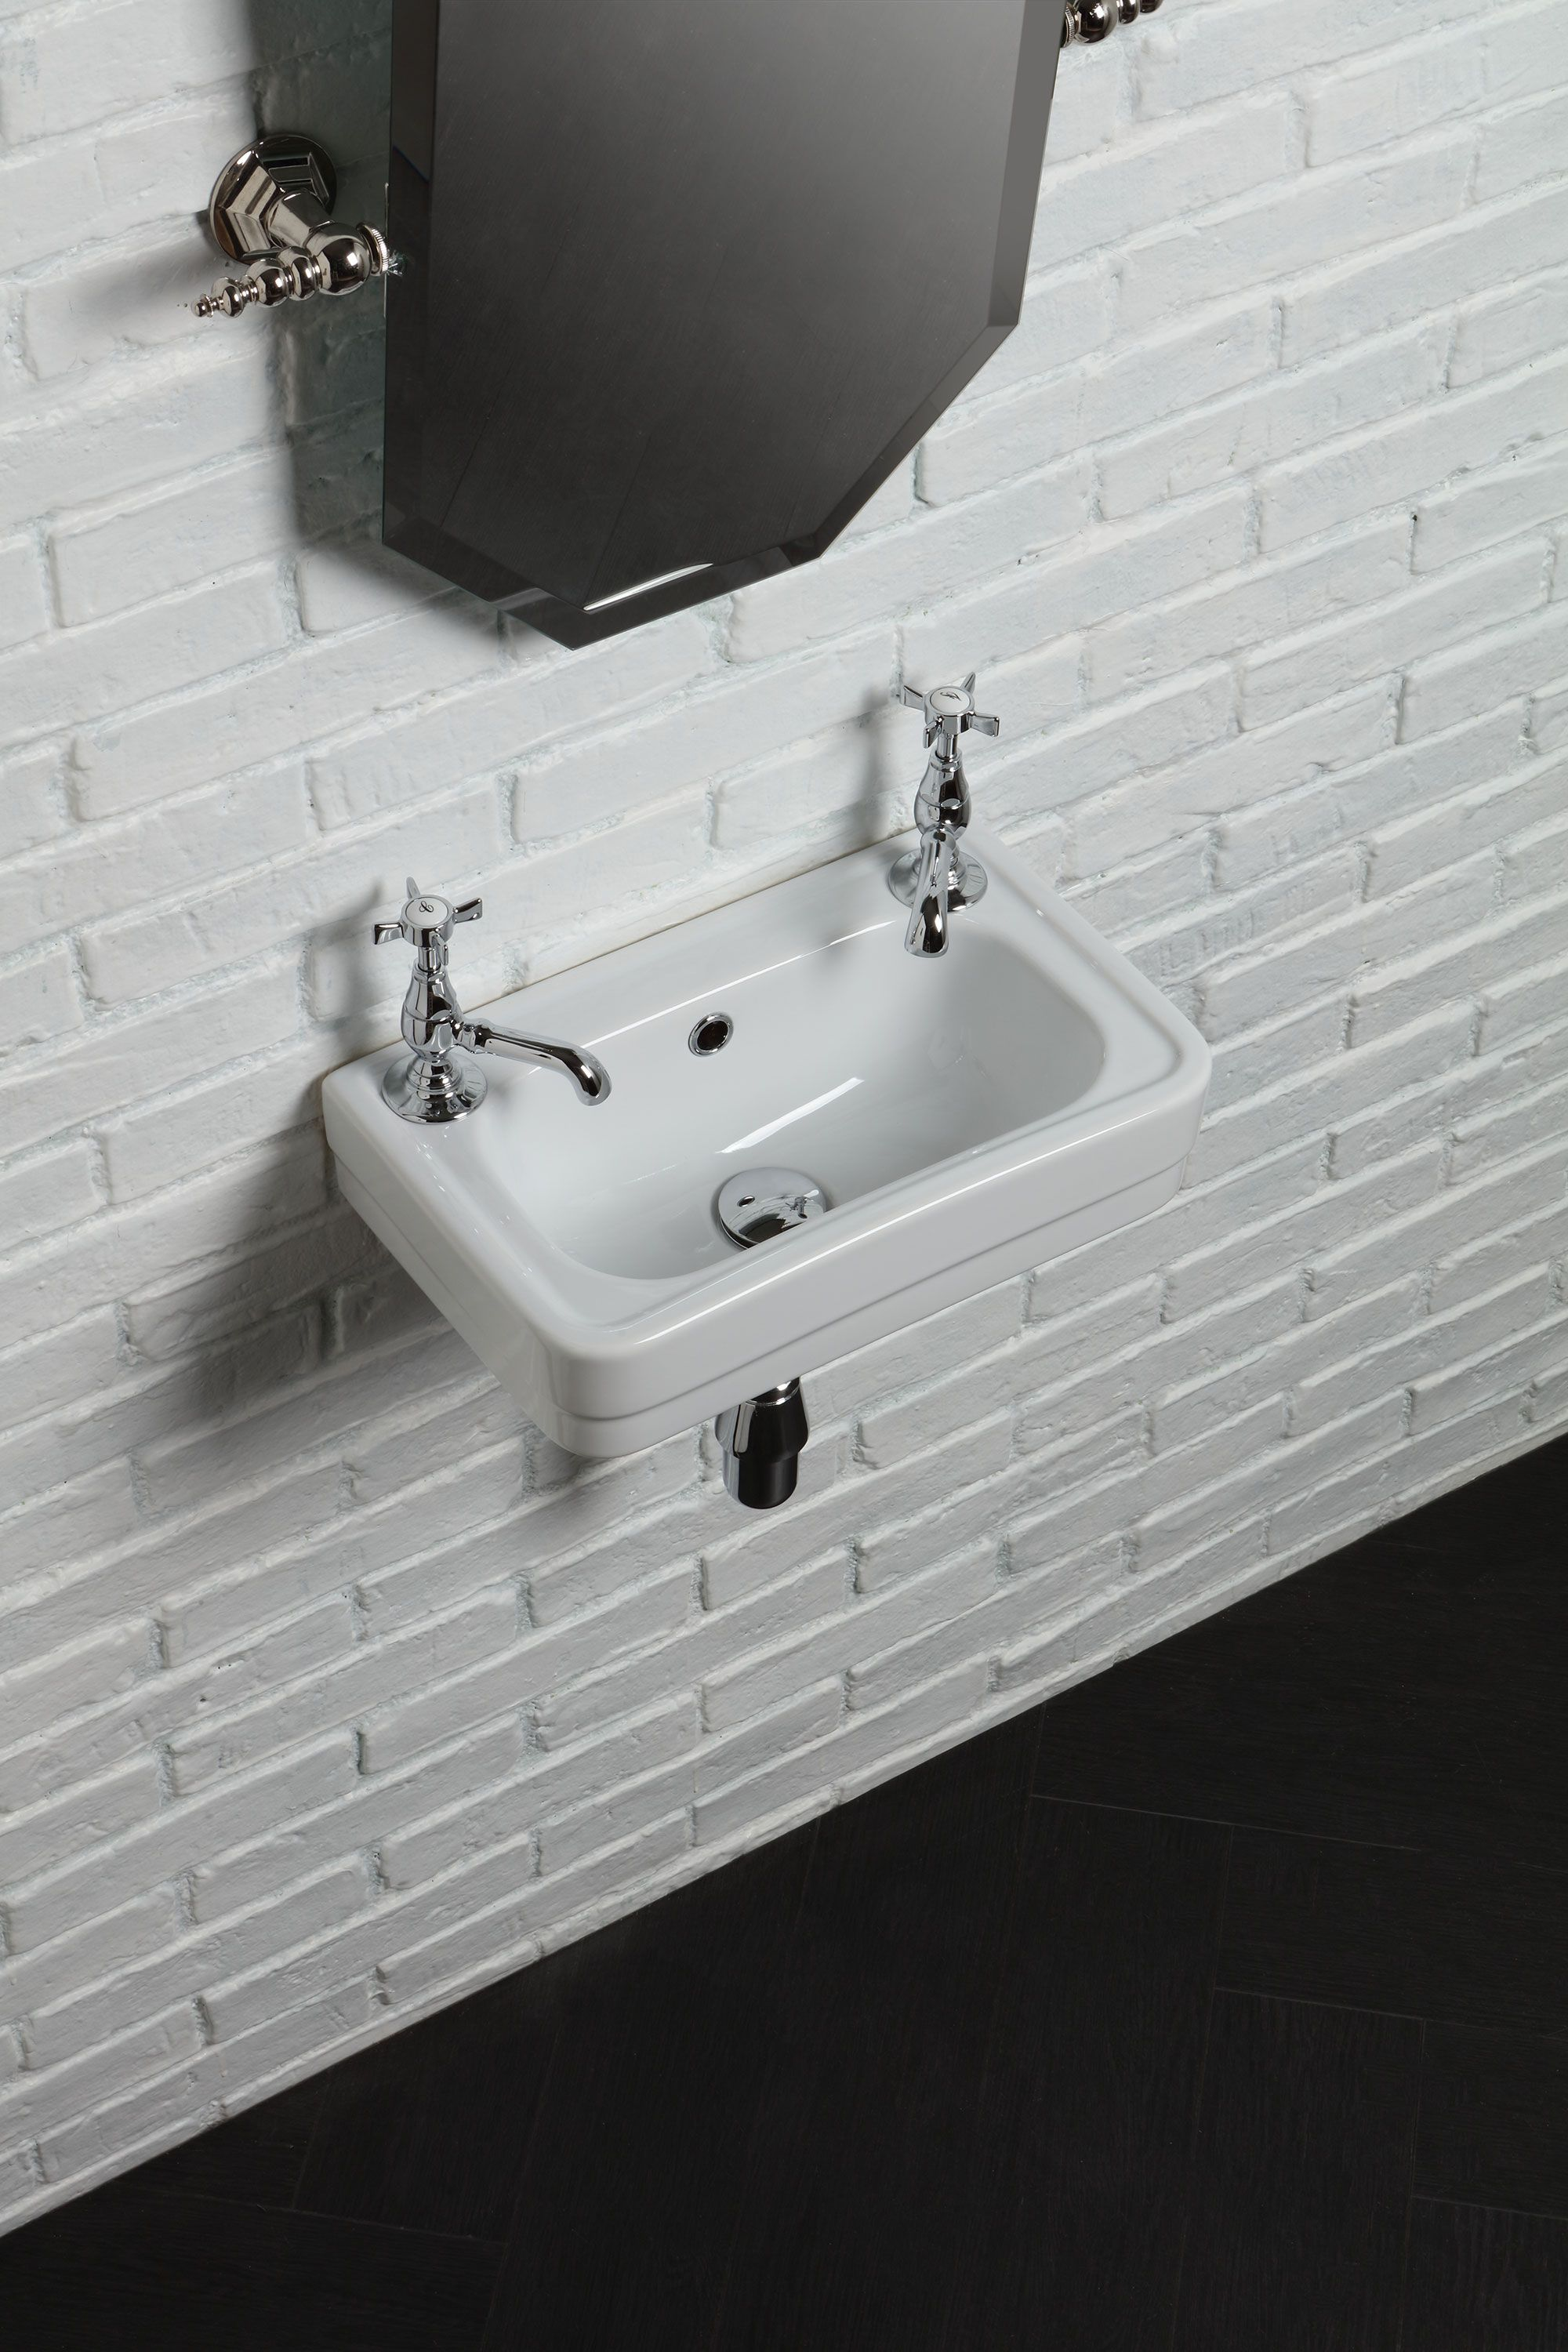 Lavabo Provence900 40x30cm Style Rétro Collection Provence900 By